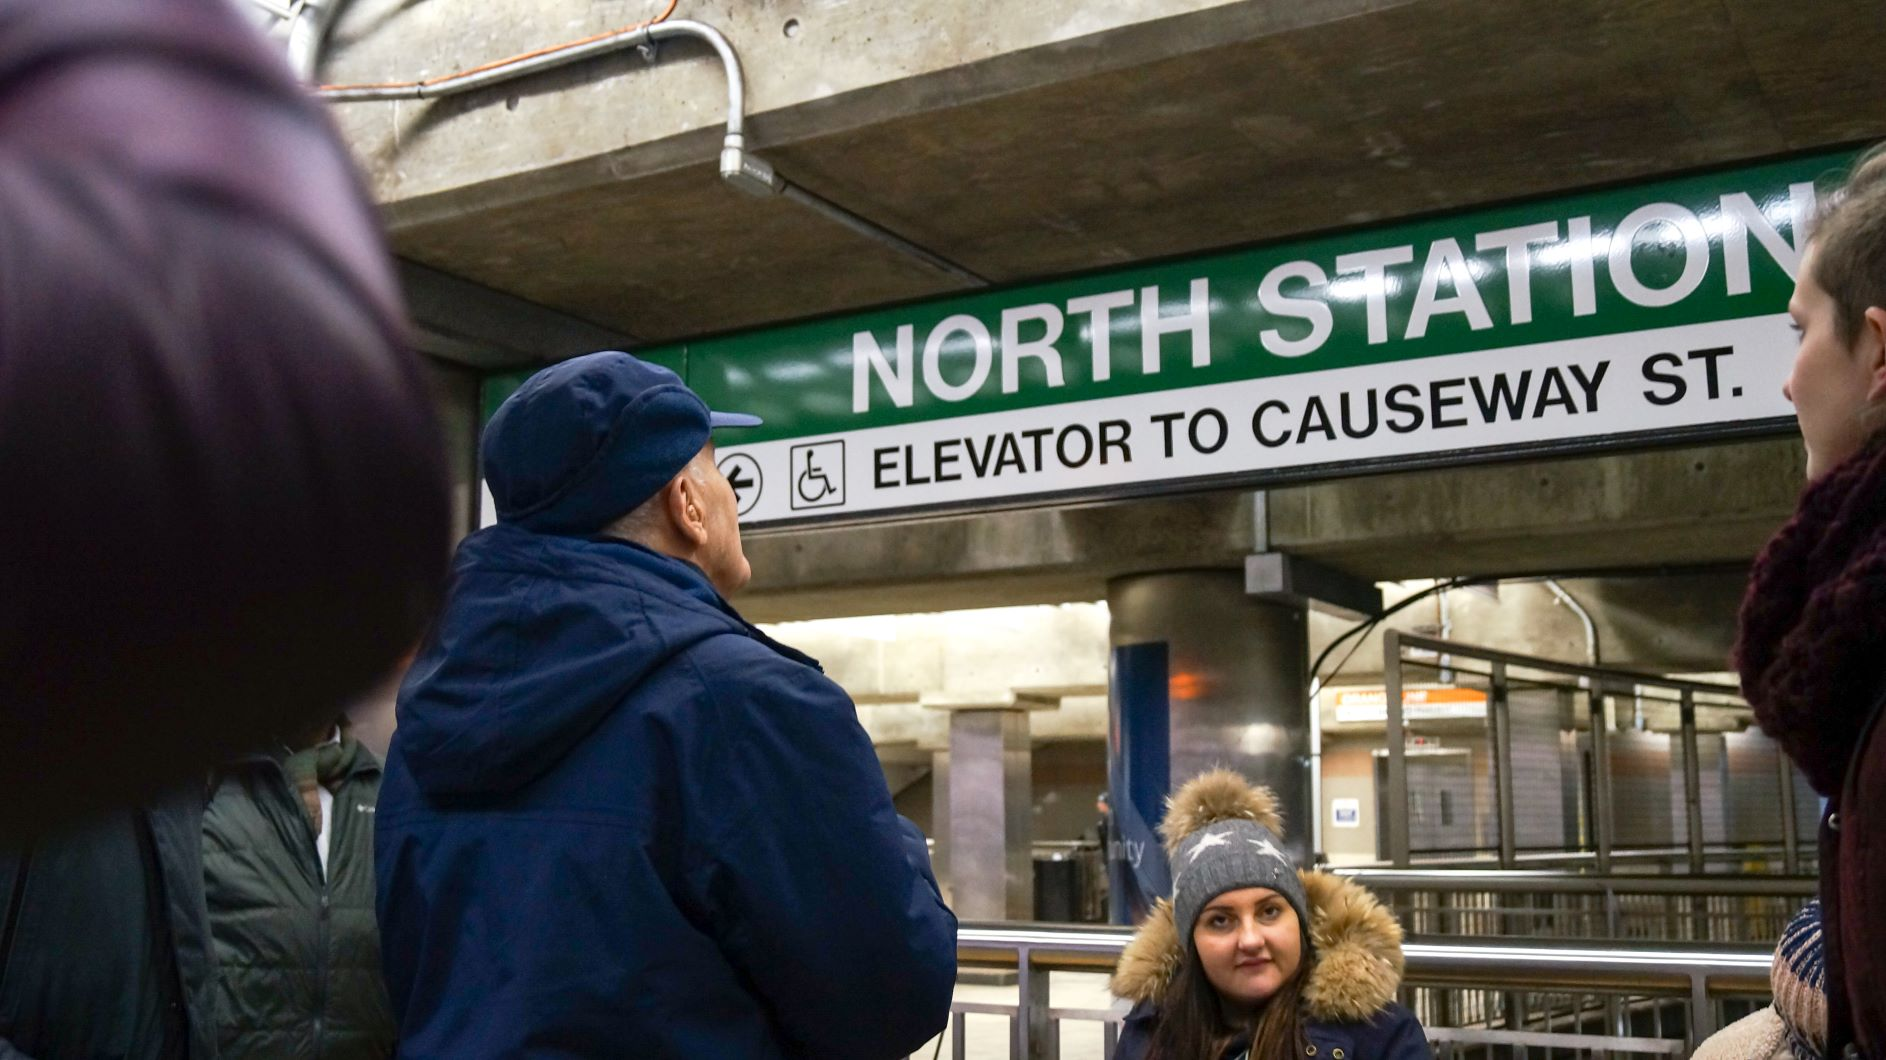 User/expert looks on at signage in North Station